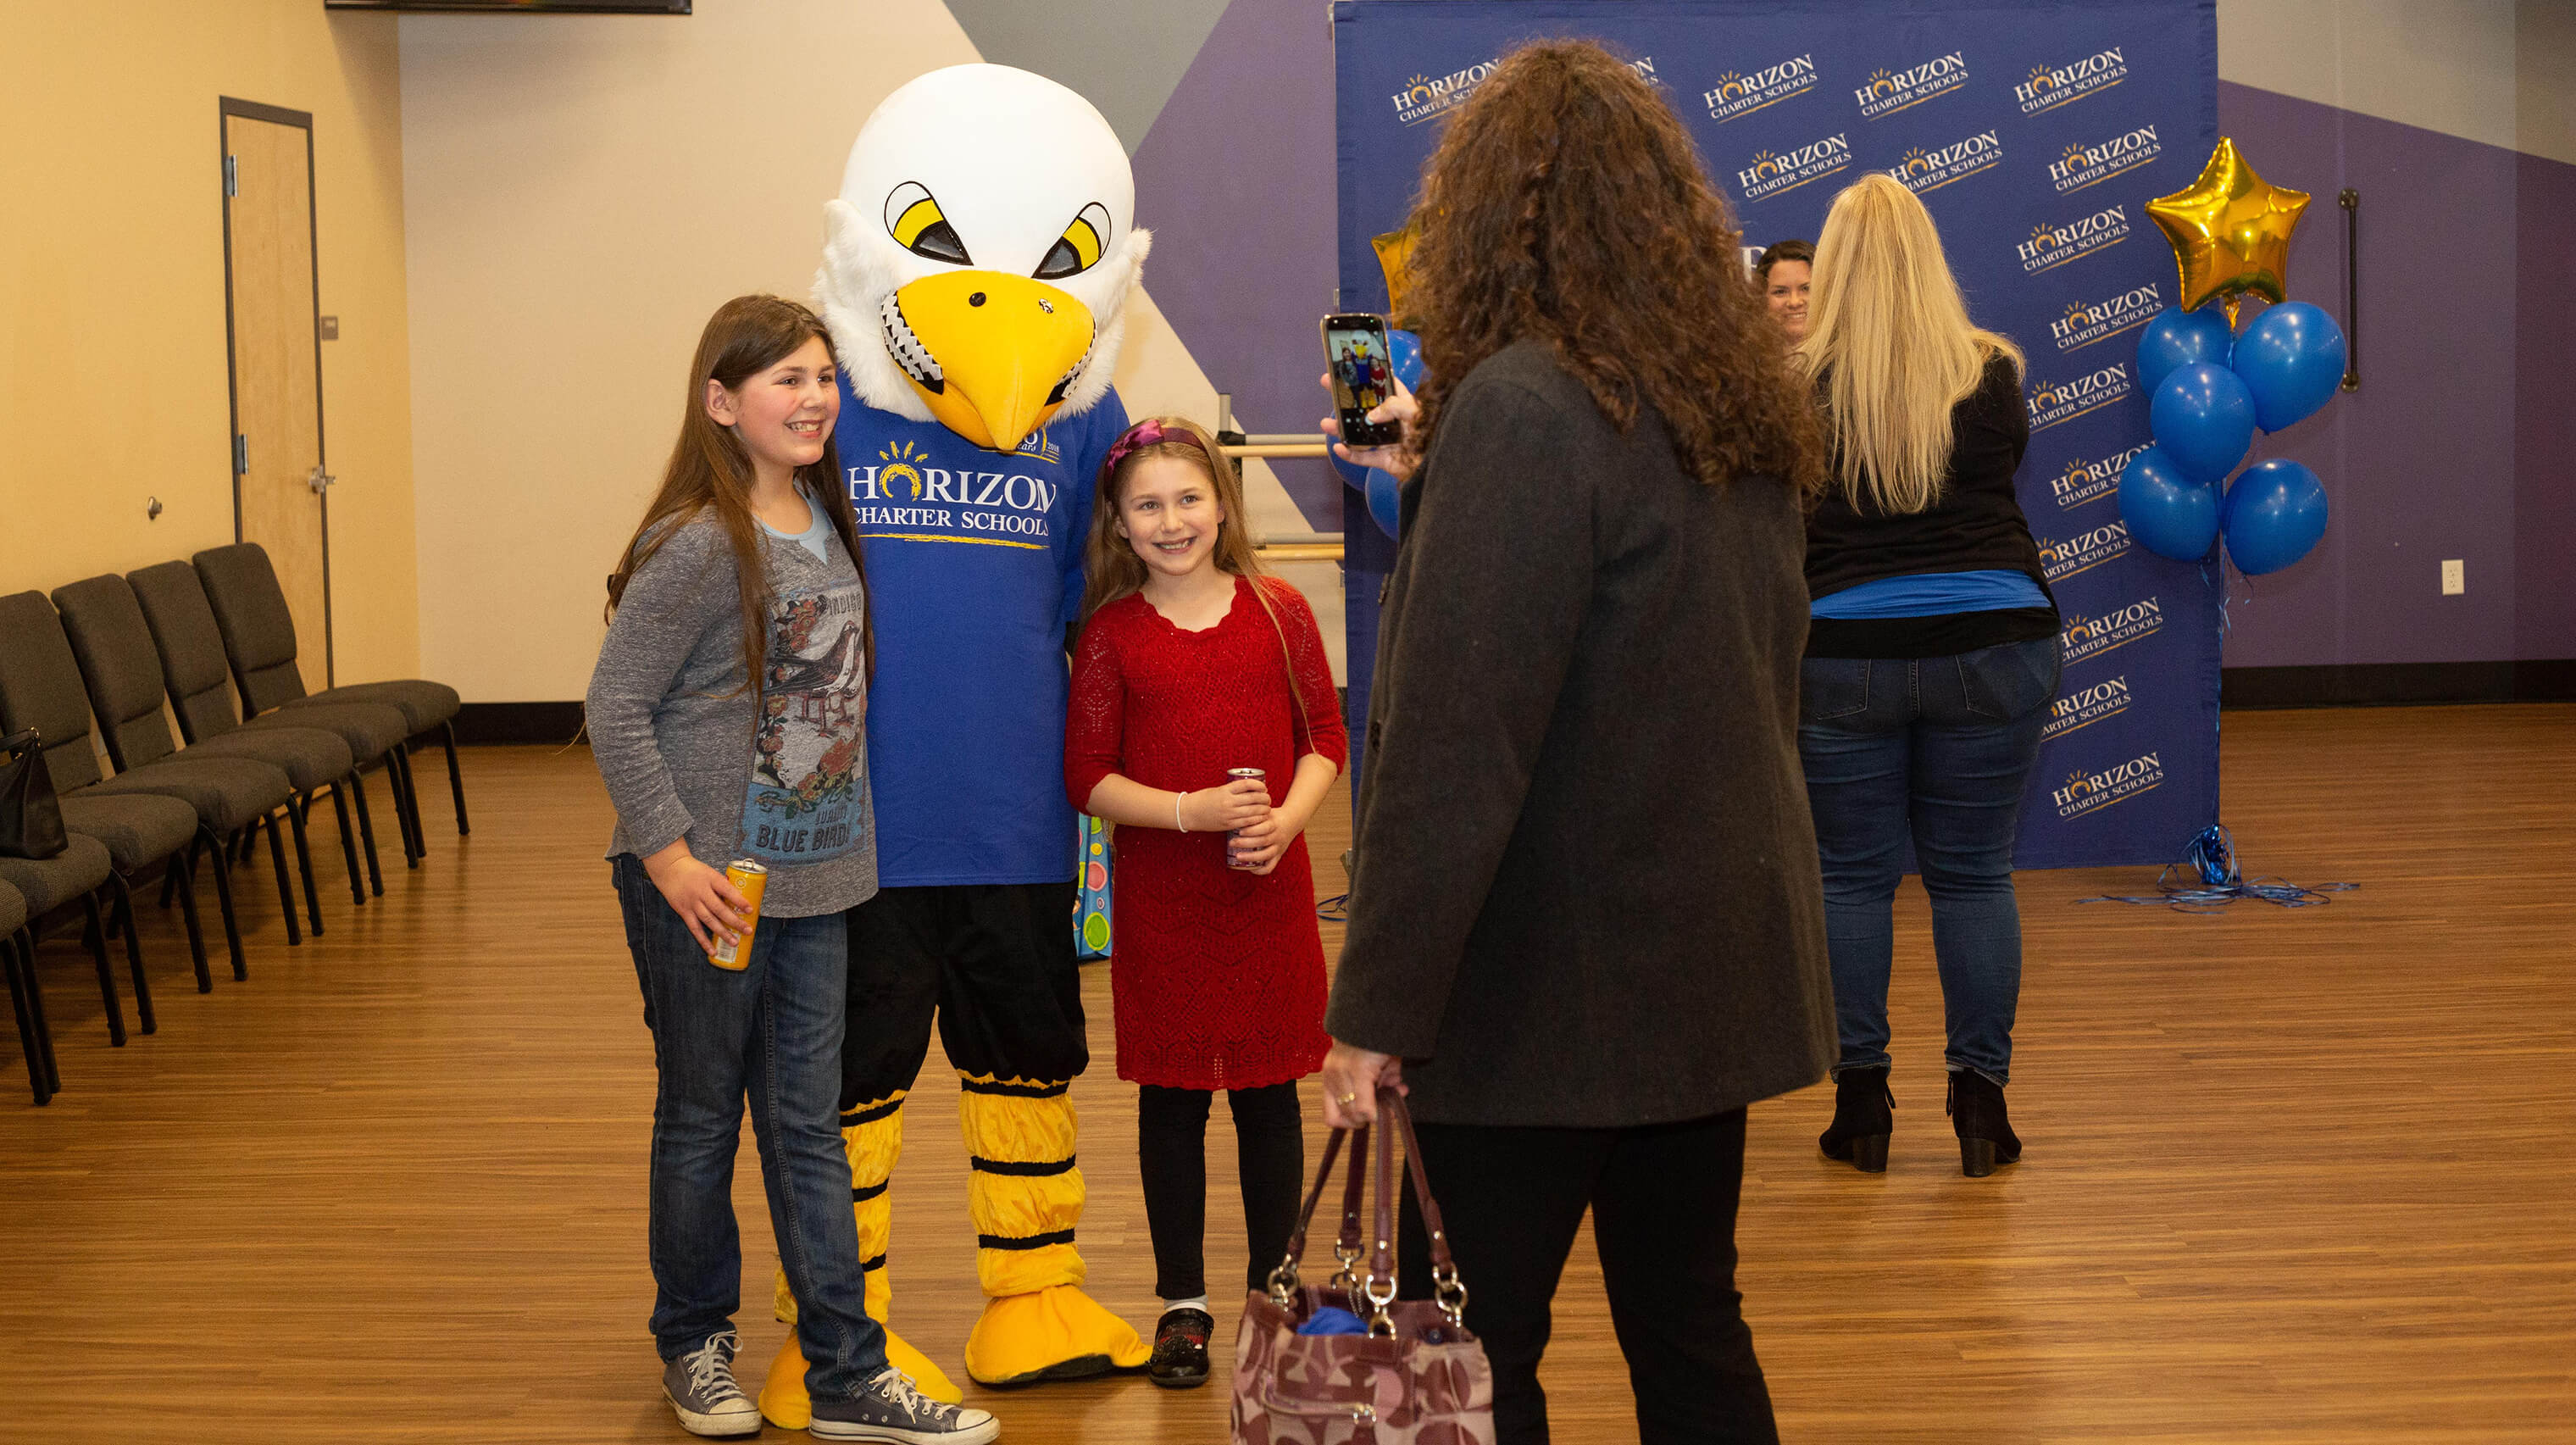 Students pose with the Horizon Charter Schools' Eagle